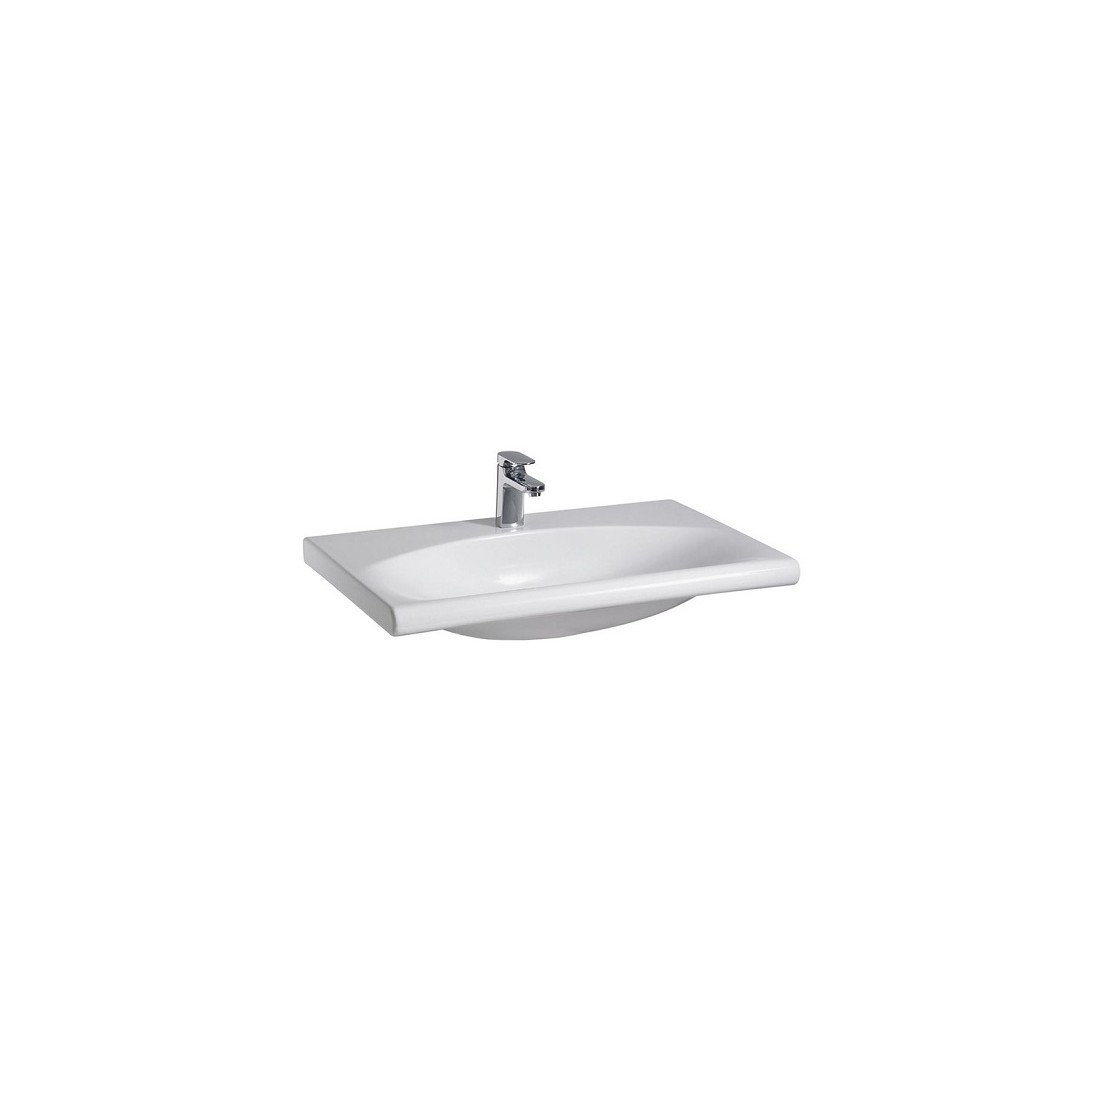 Praustuvas IDEAL STANDARD Daylight, 80 cm